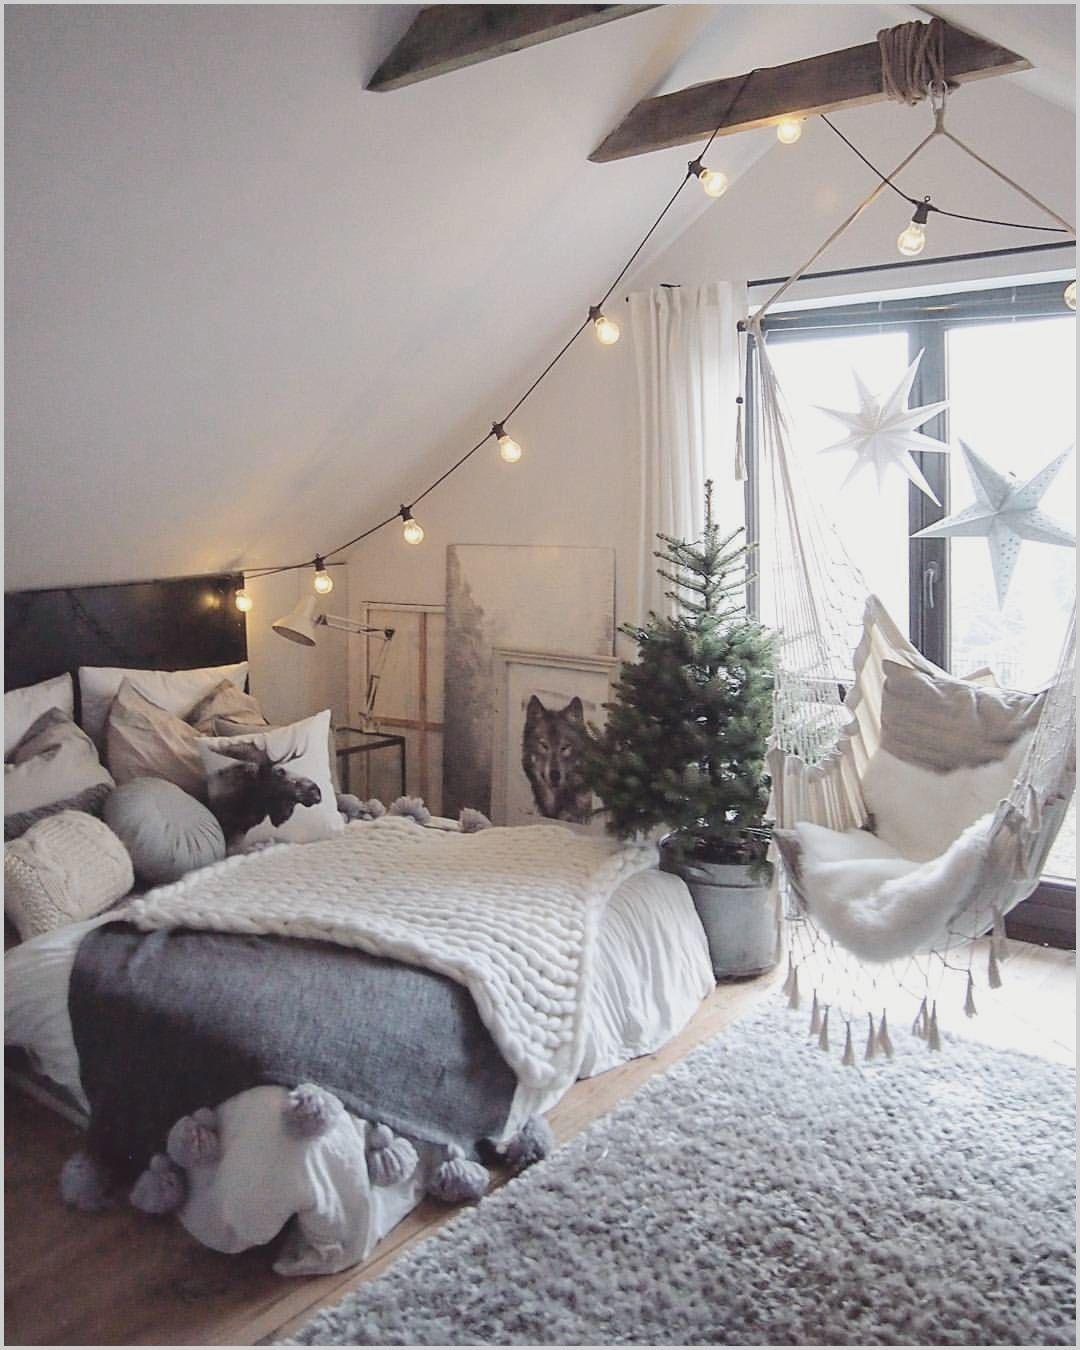 Bedroom Ideas For Young Adults Pinterest Bedroom Decor Cozy Bedroom Ideas Pinterest Small Room Bedroom